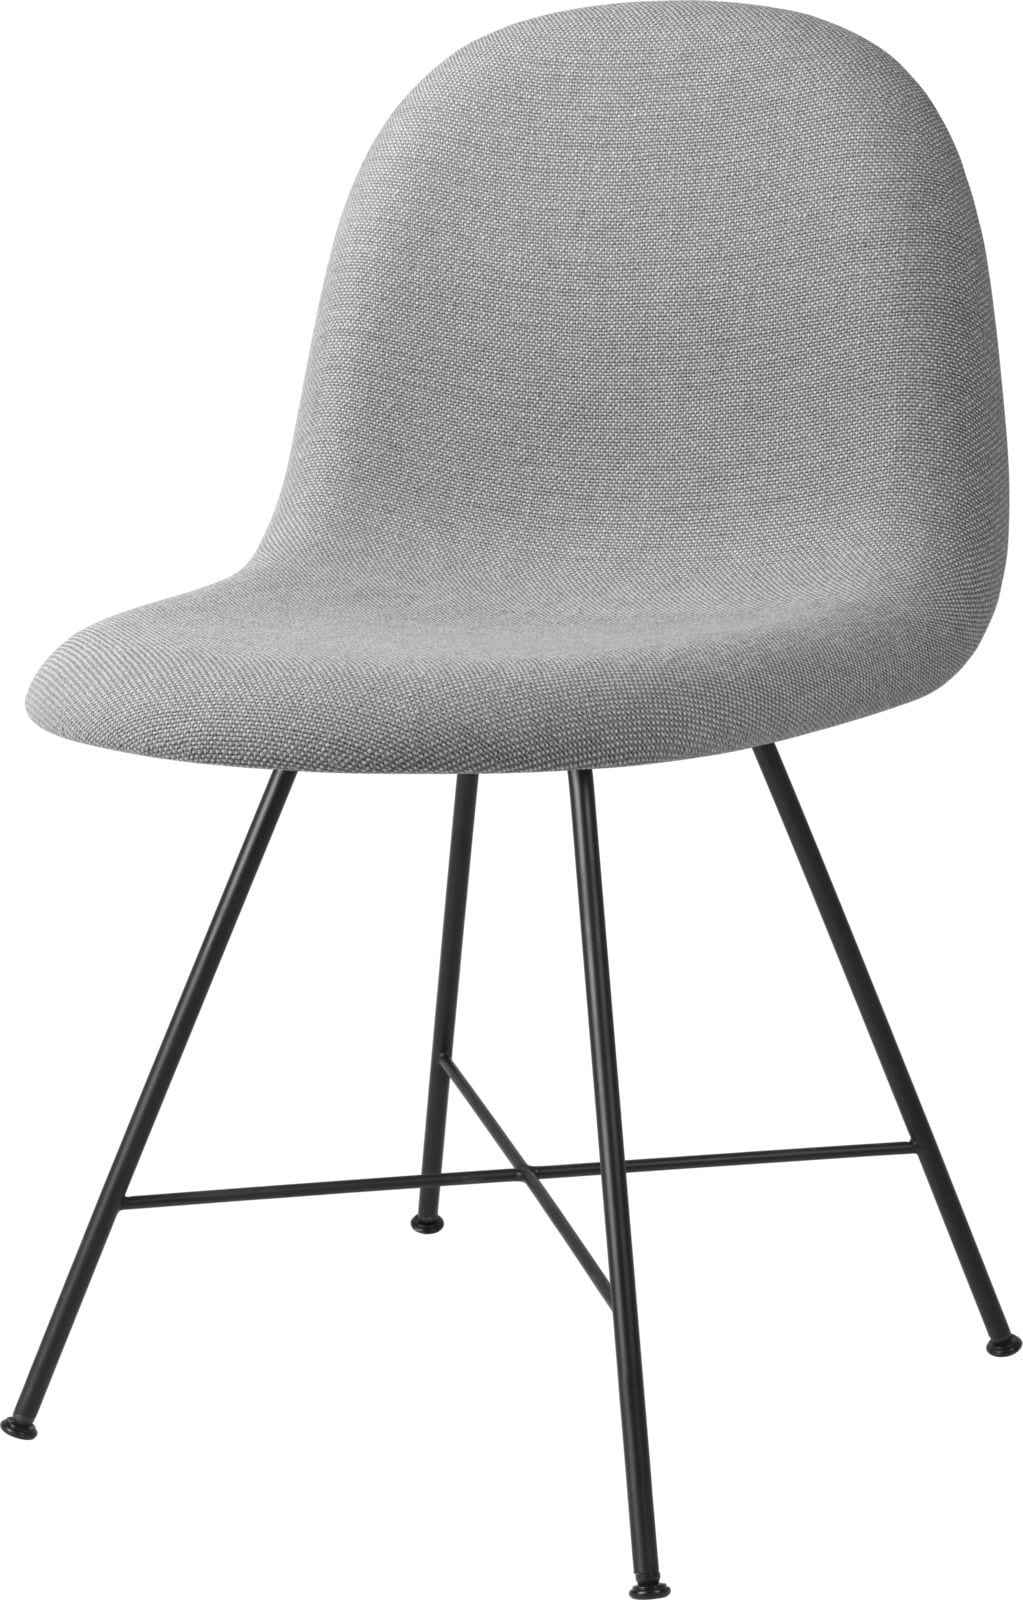 3D Dining Chair- Fully Upholstered, Center Base